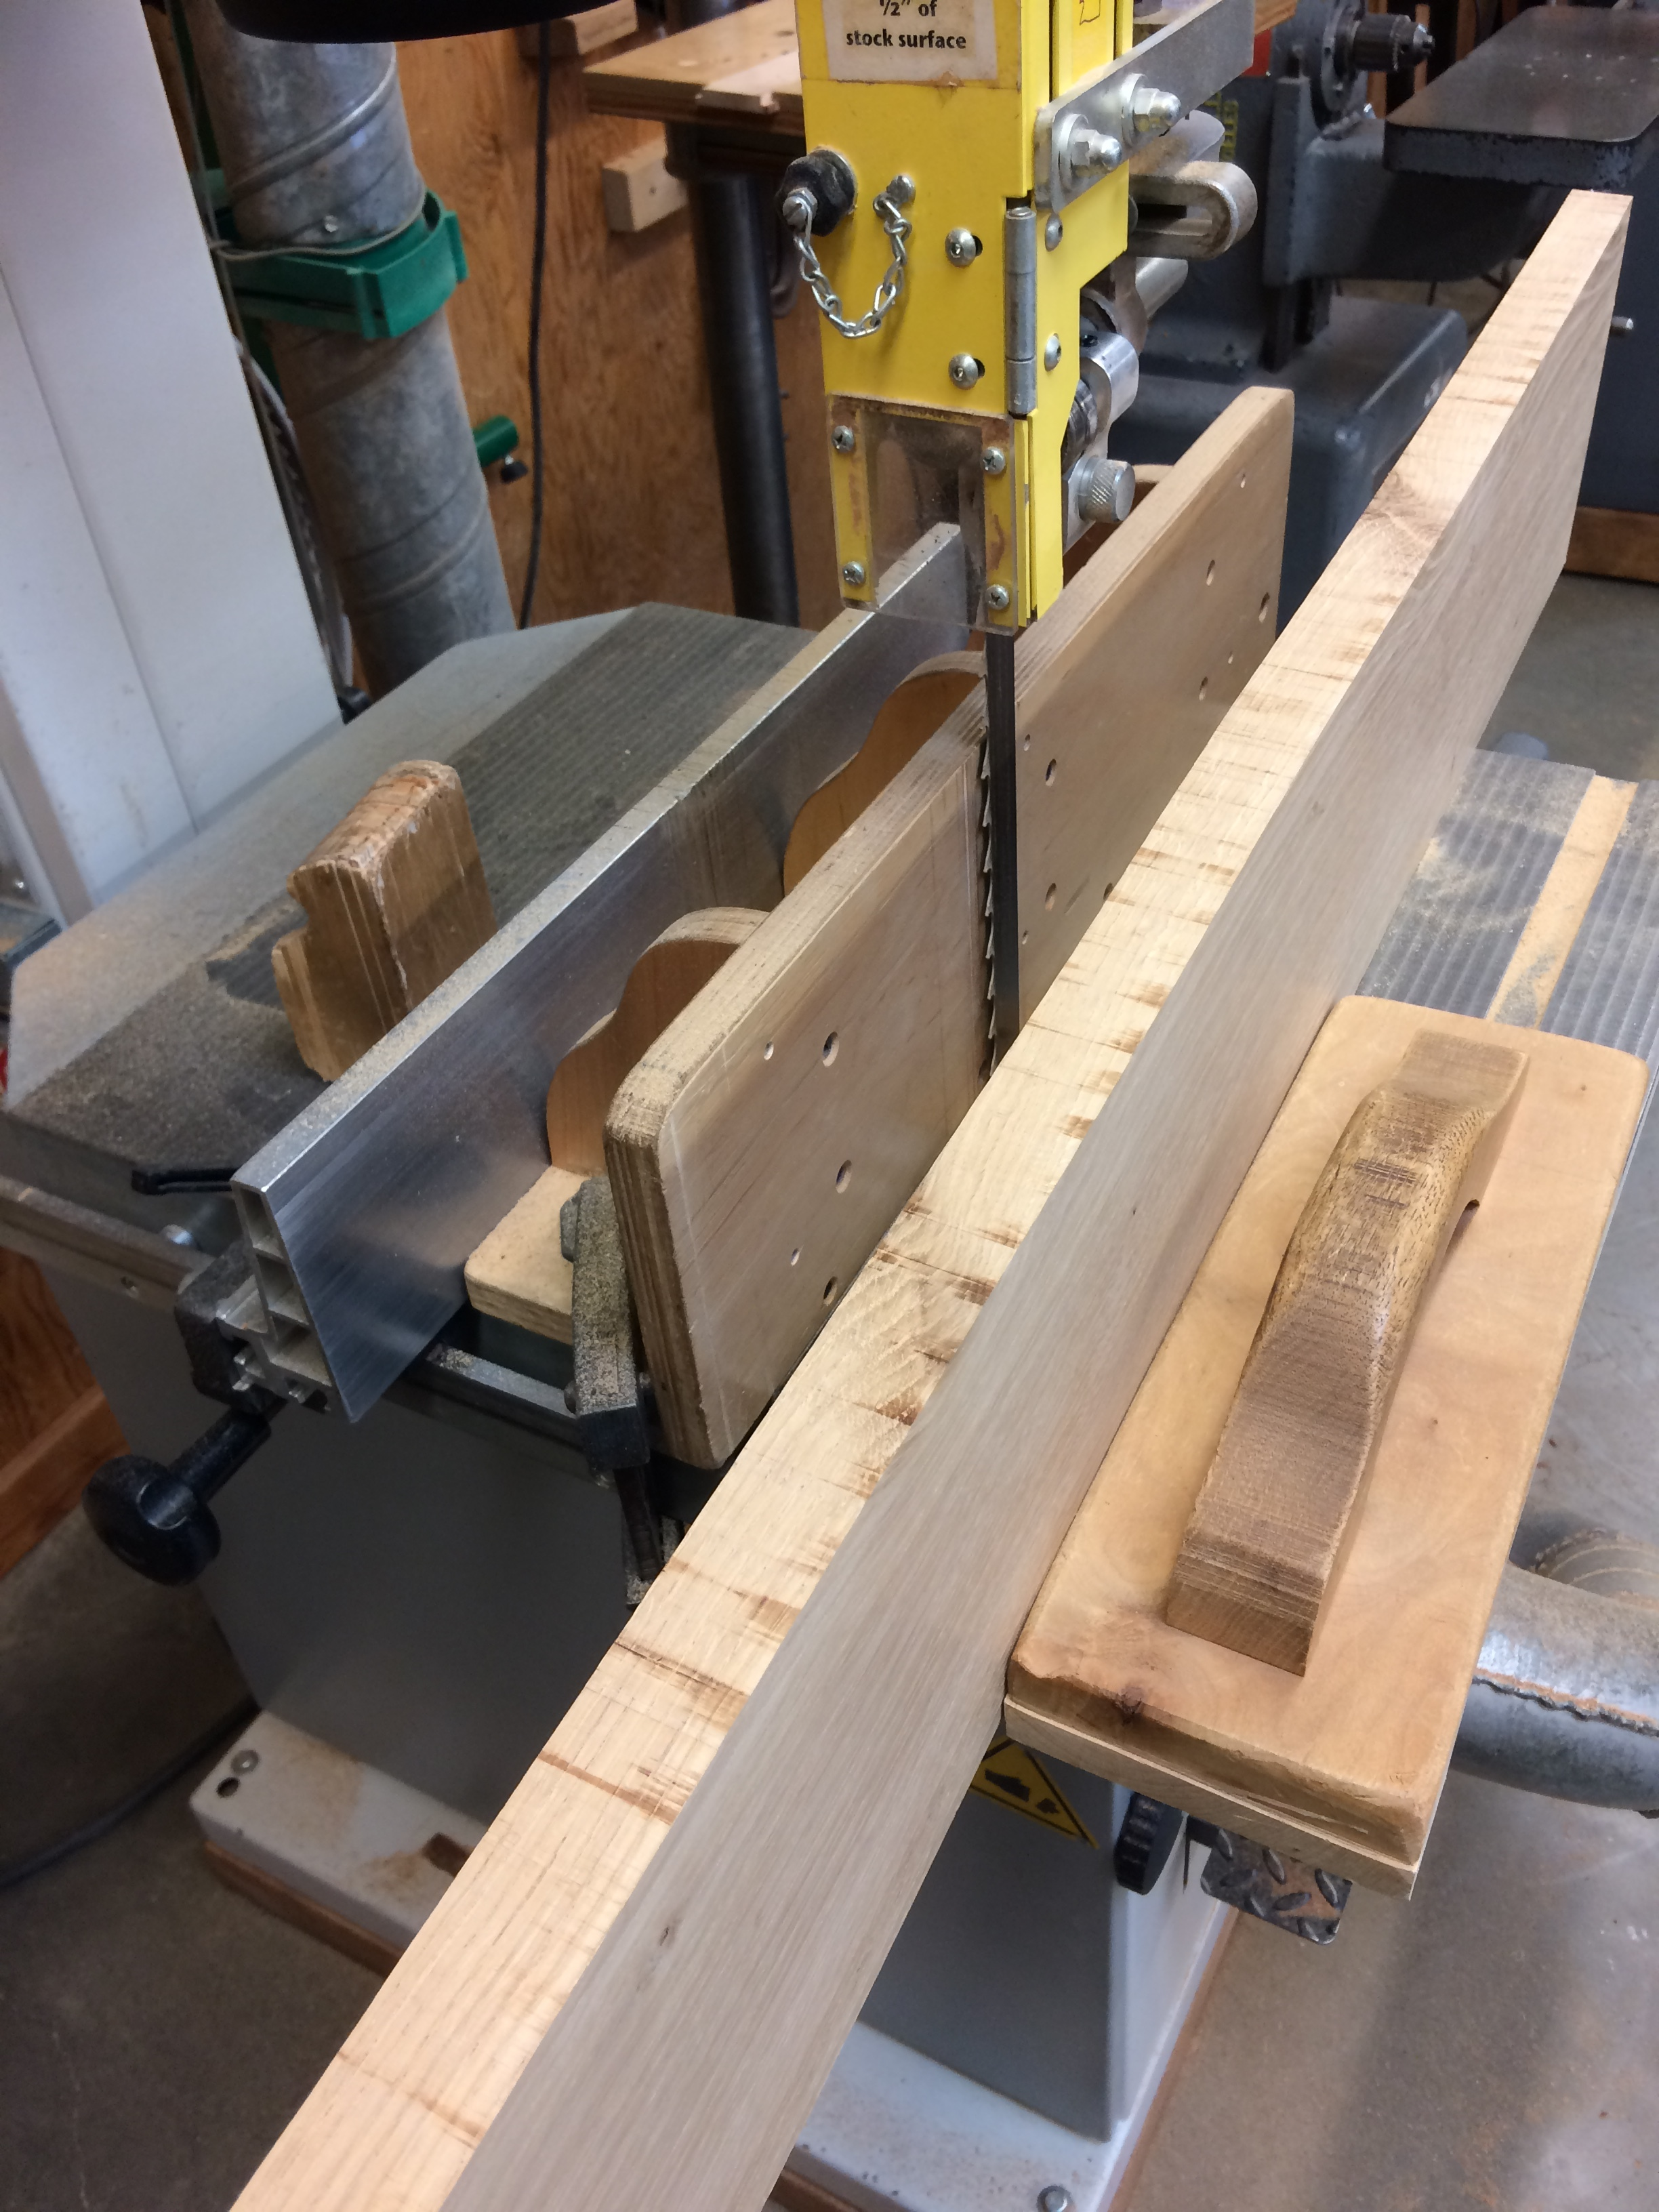 Re-saw the plank to make veneers.